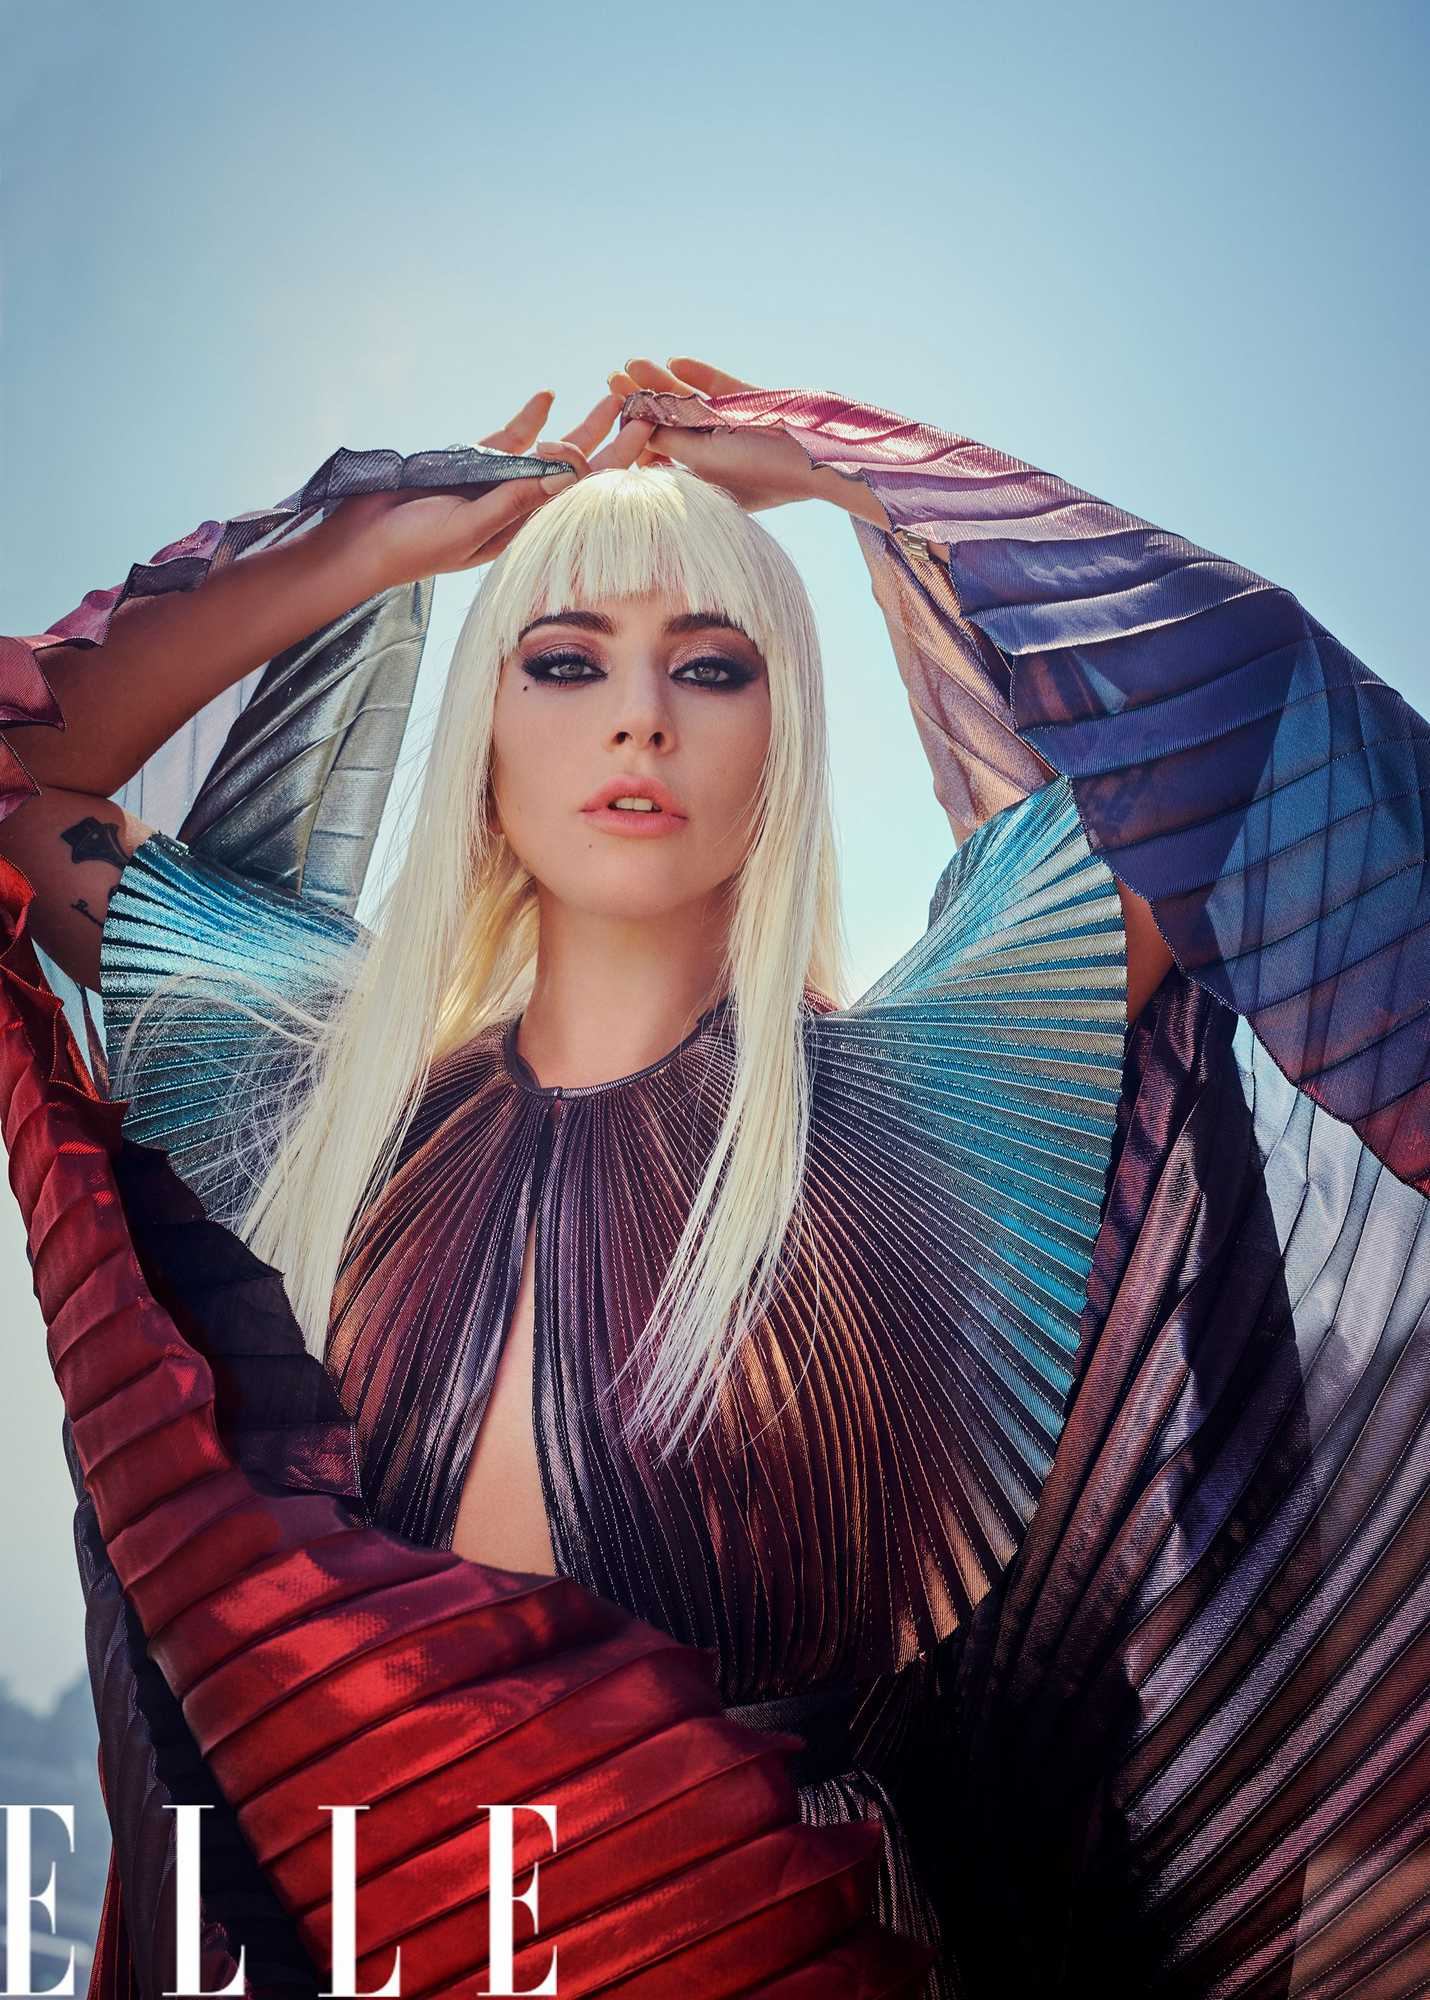 Lady-Gaga-The-Women-In-Hollywood-Issue-US-Elle-November-2018c513d6997952794.jpg